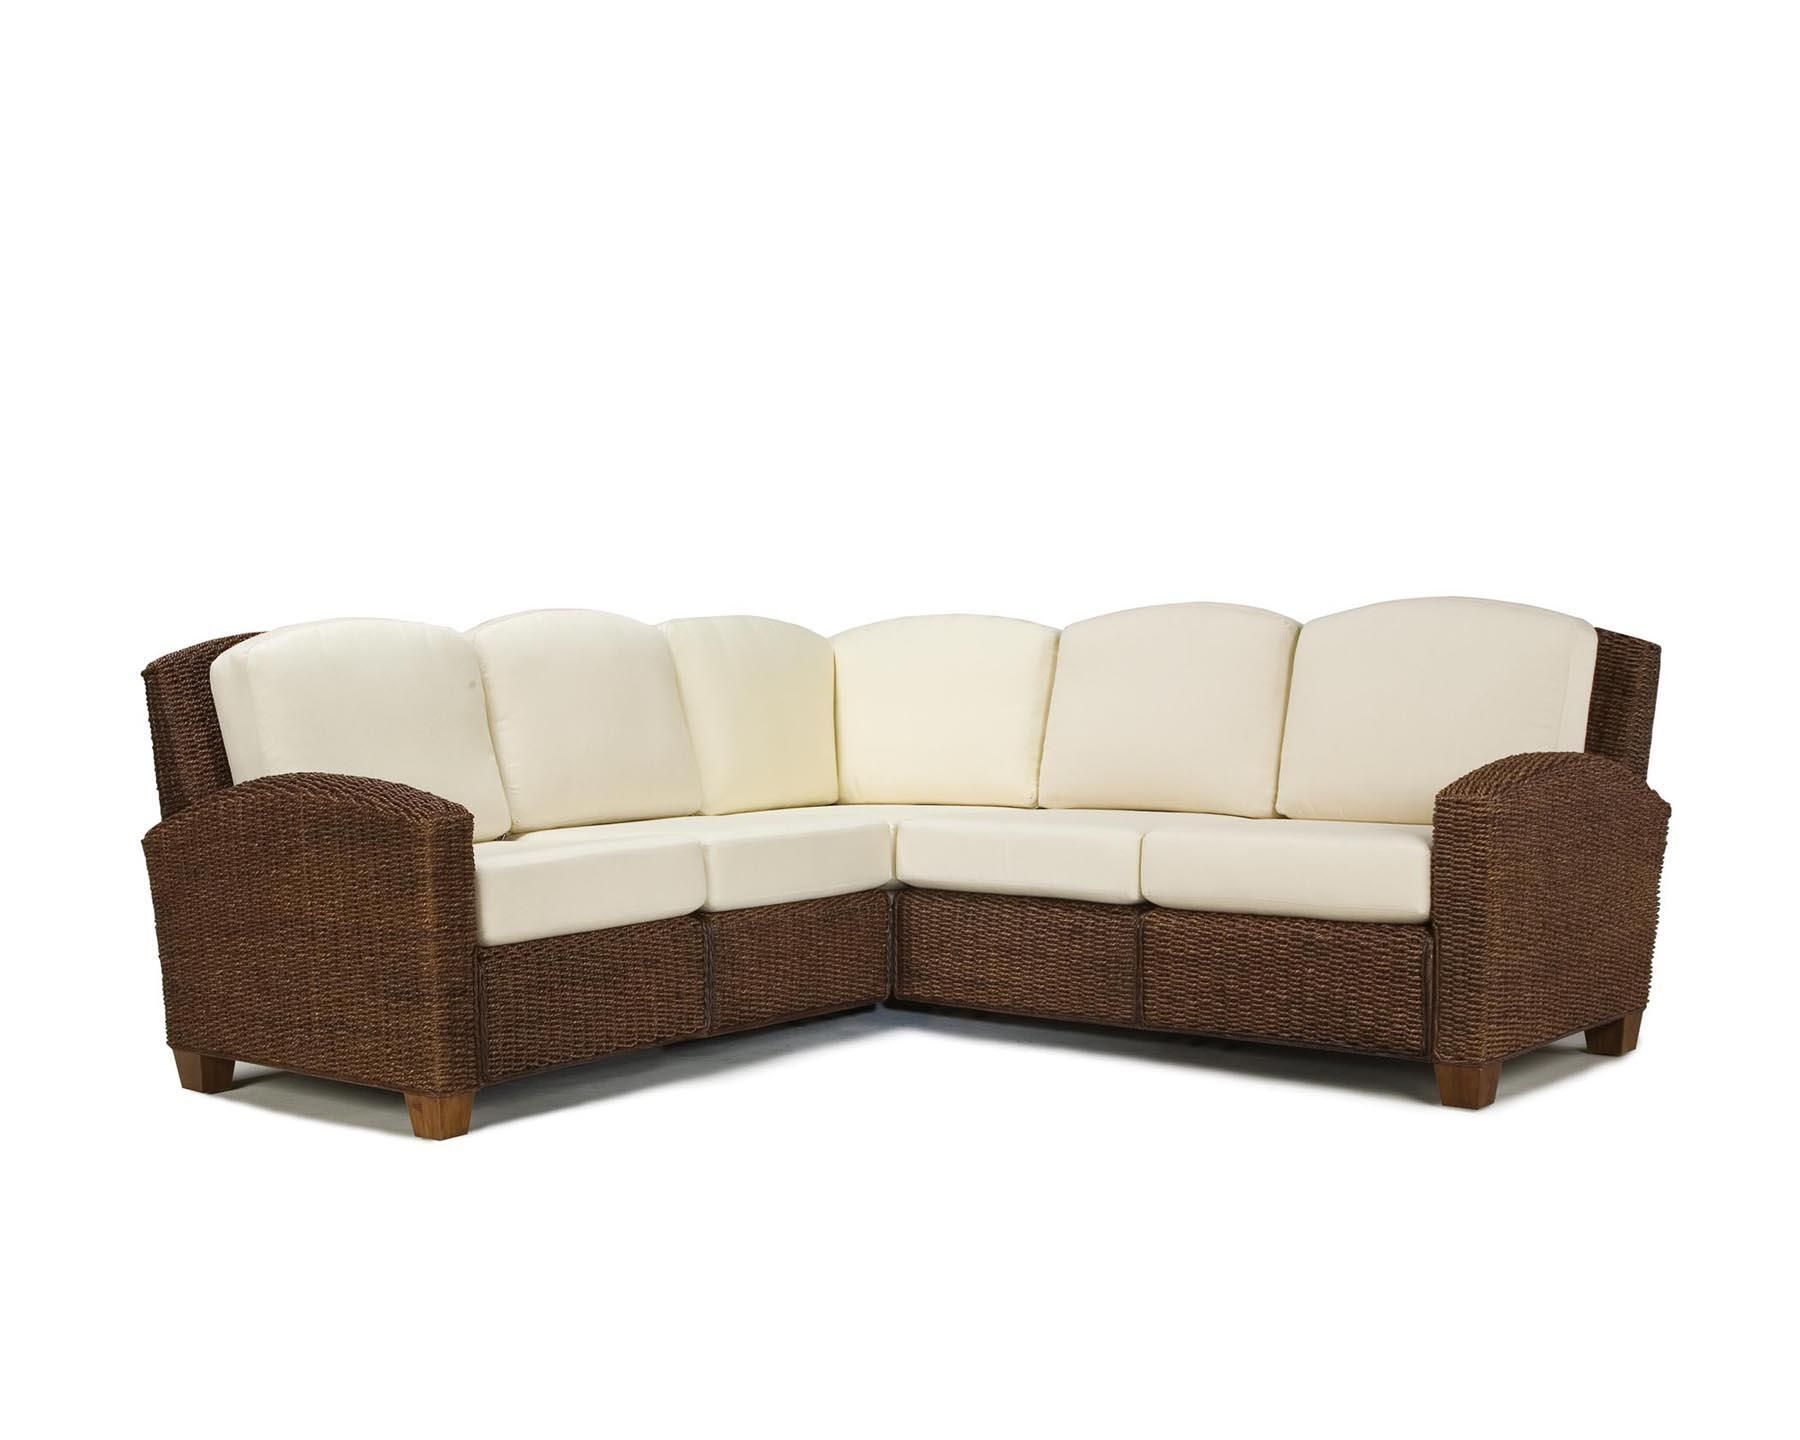 Full Size Of Sofas L Shaped Sofa Picture Concept Revit Small Inside Small L Shaped Sofas (View 14 of 20)